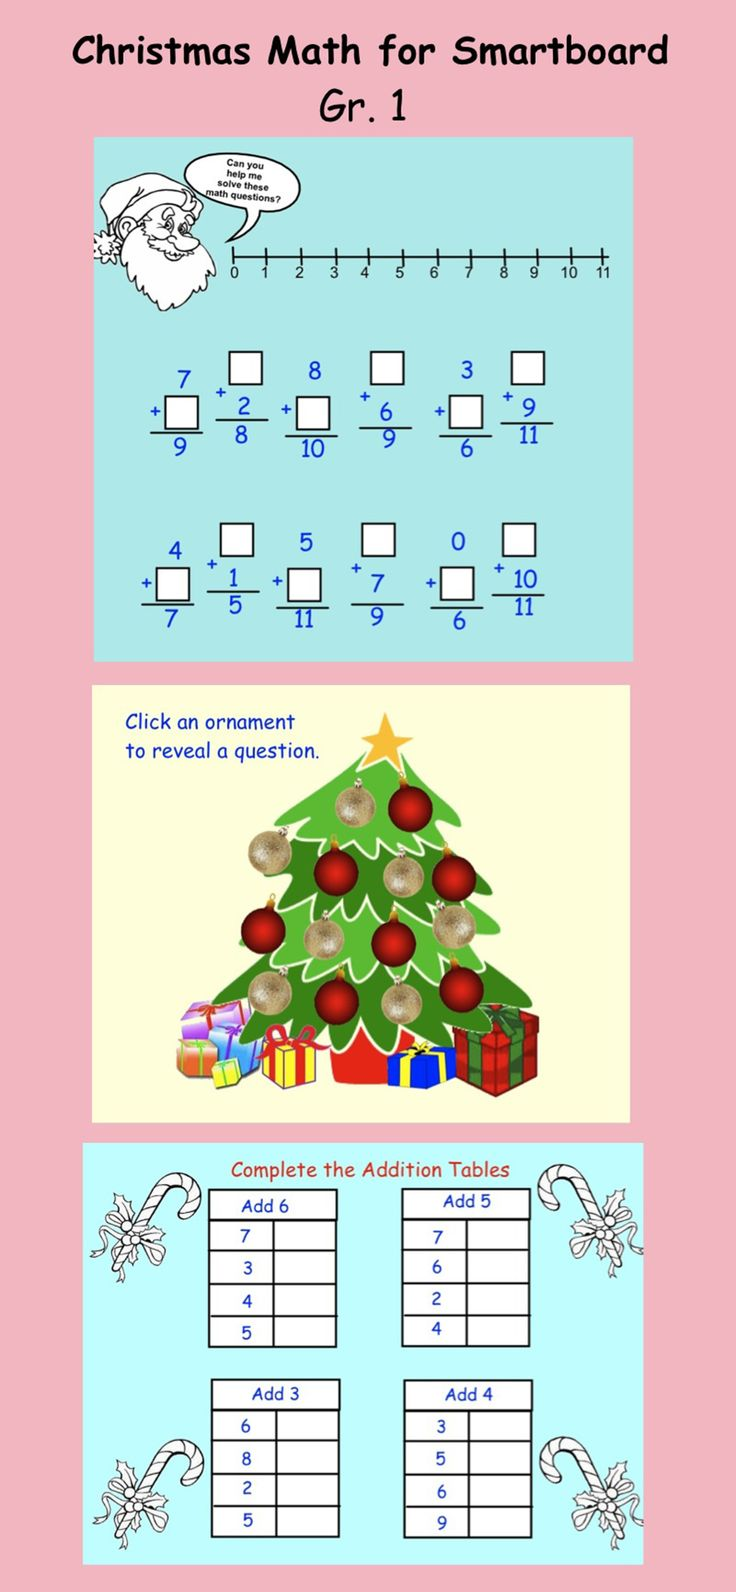 17 best Games images on Pinterest | Learning resources, Math lessons ...